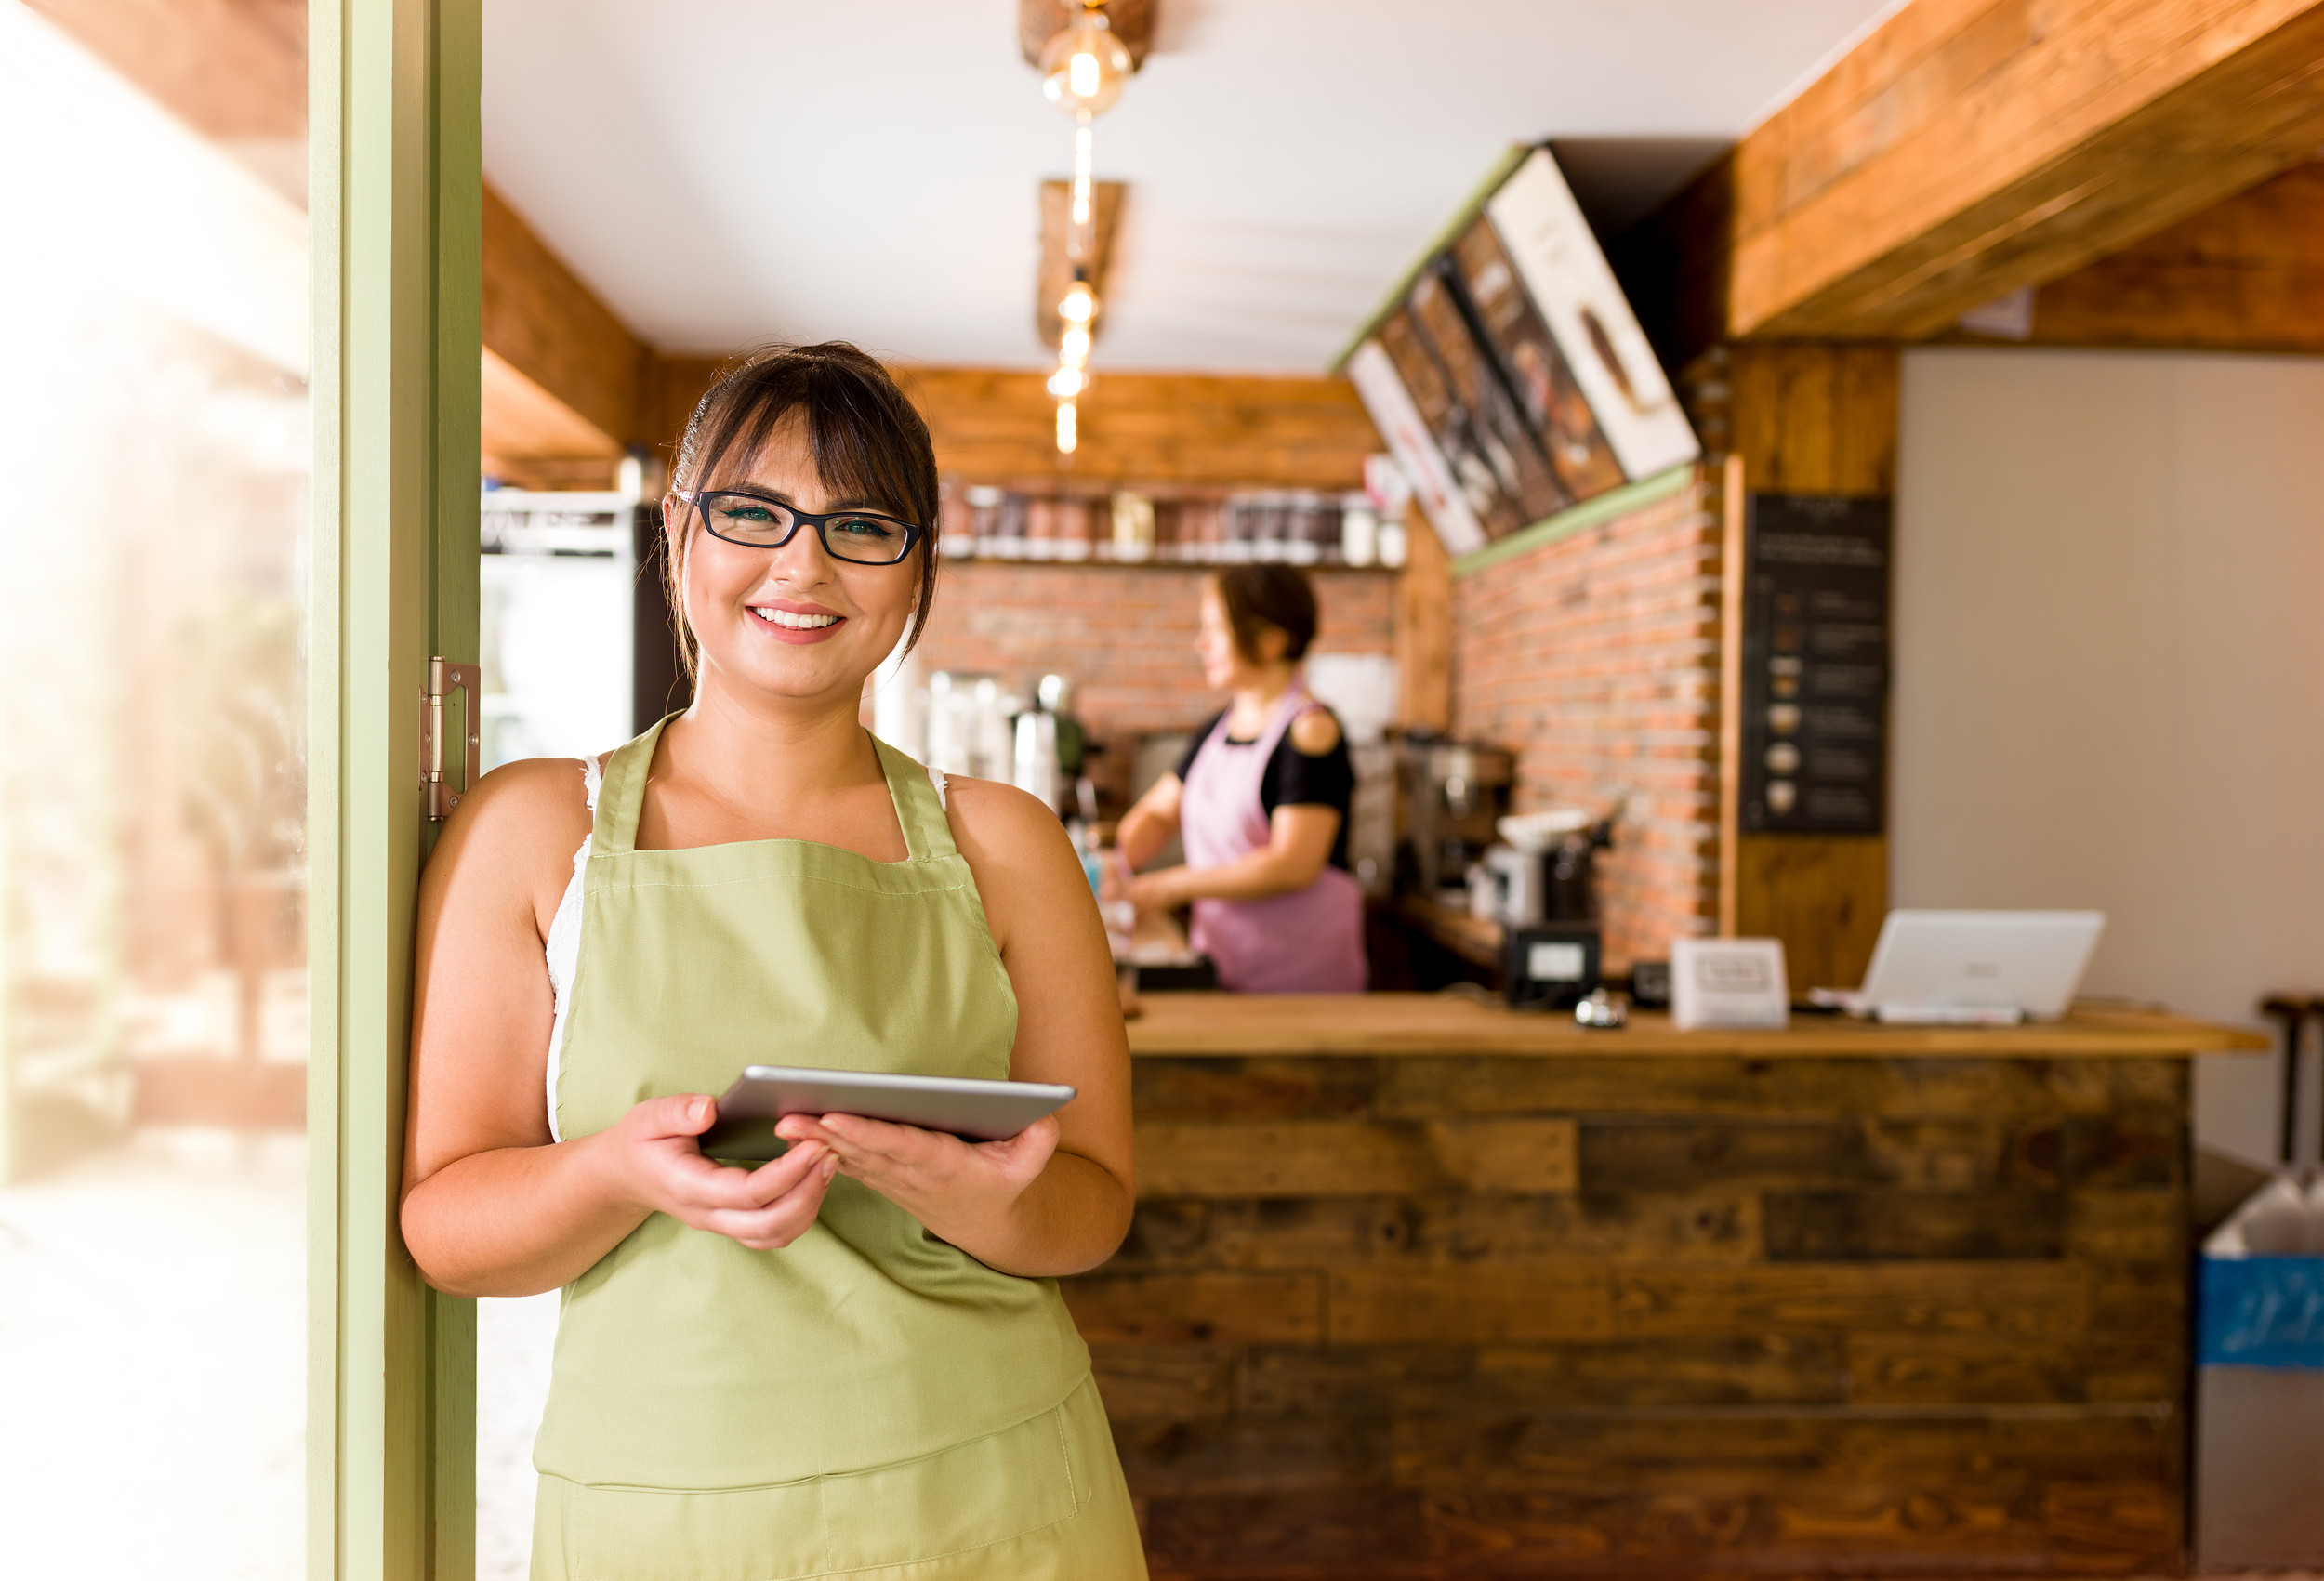 Ways to celebrate and support women small-business owners